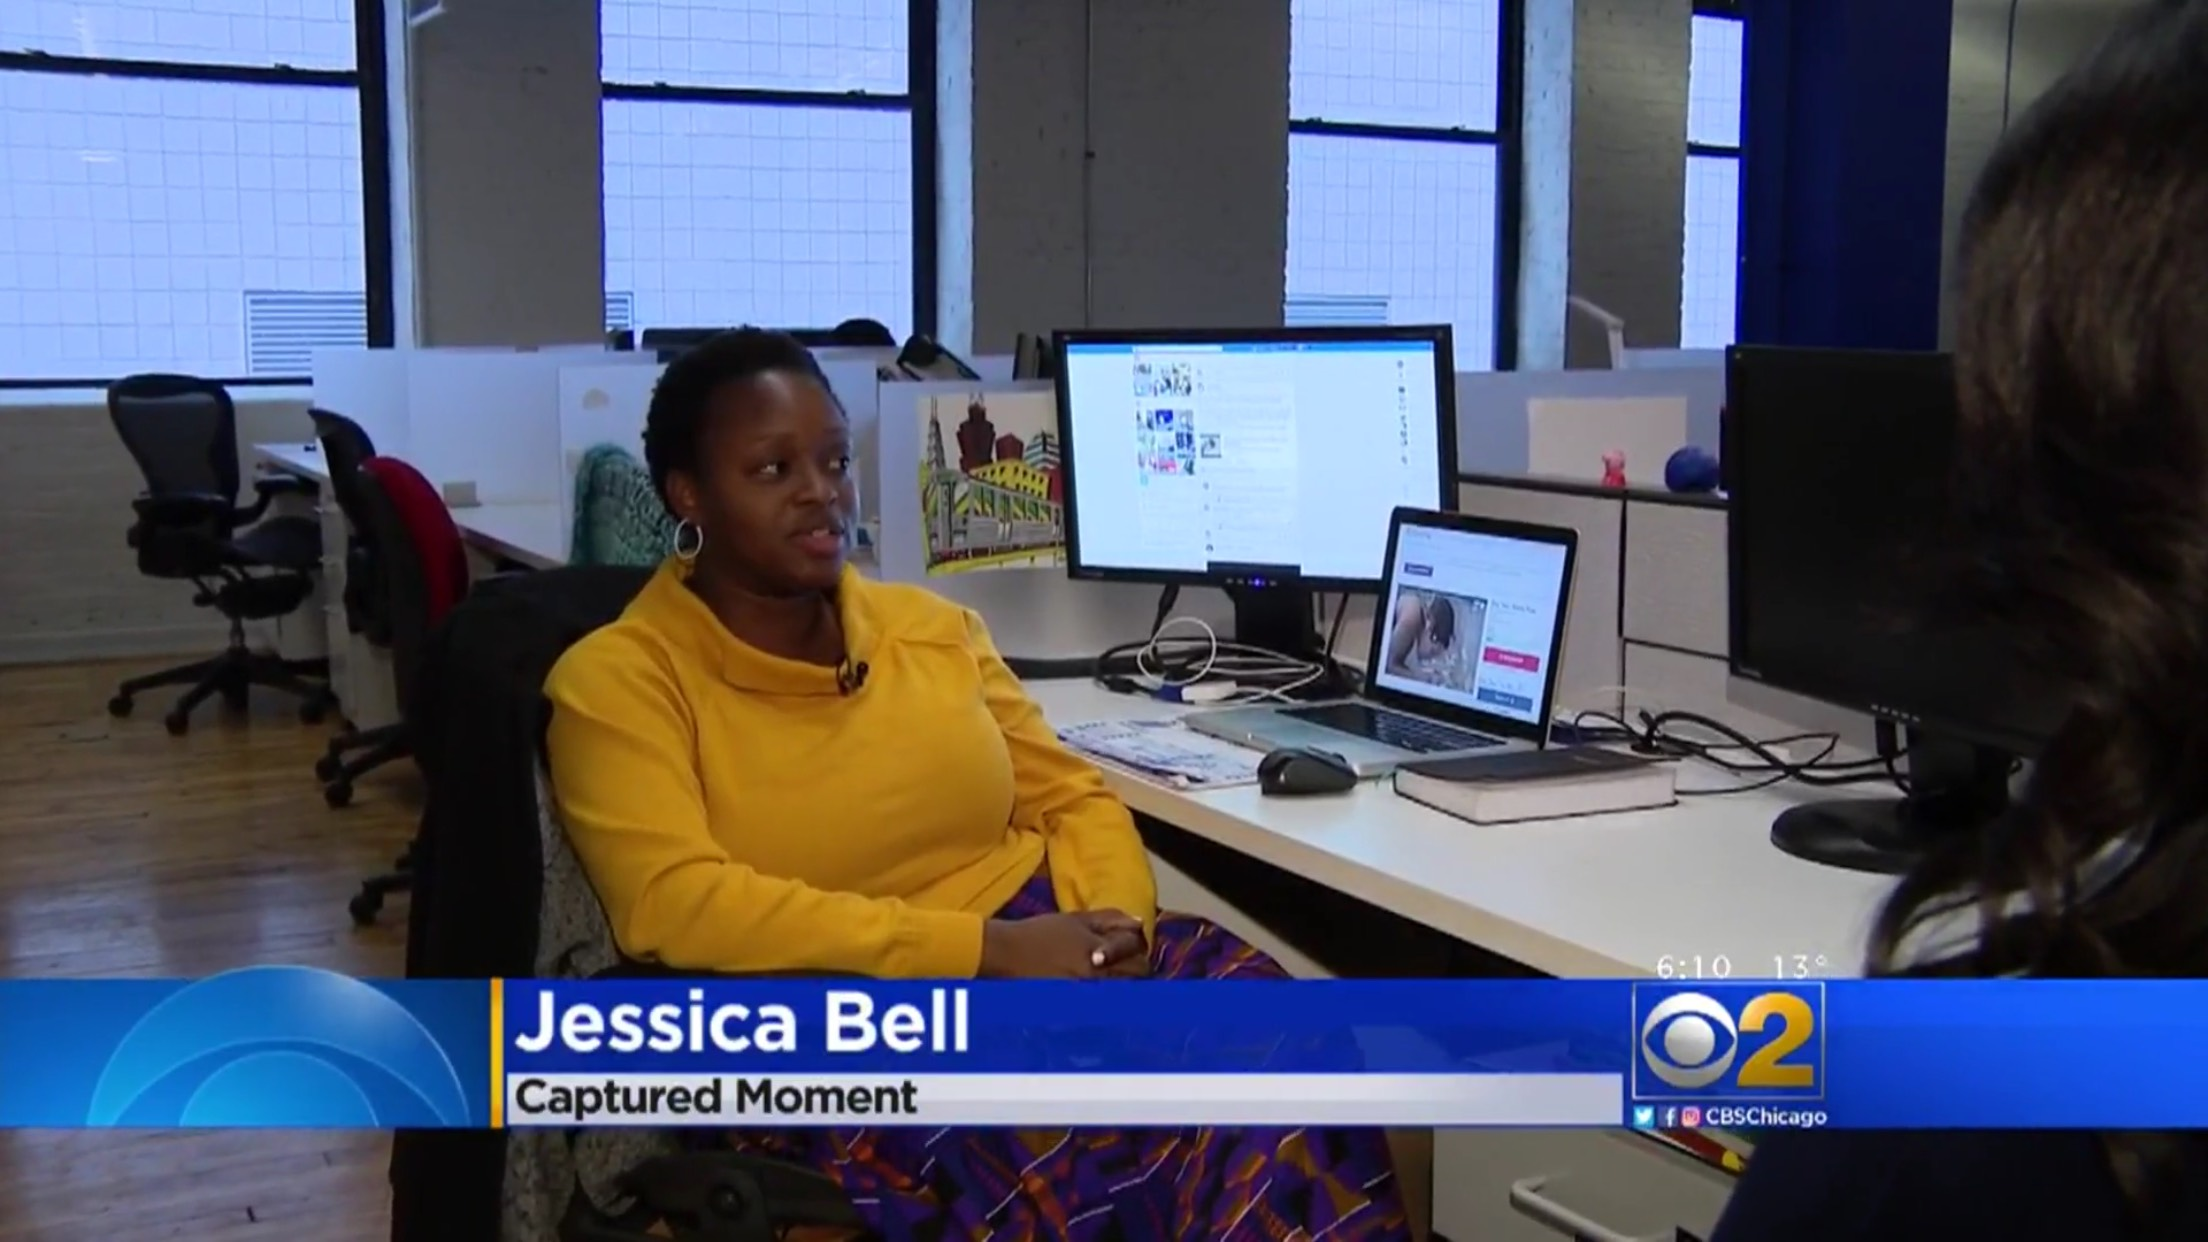 Jessica Bell: Captured Moment